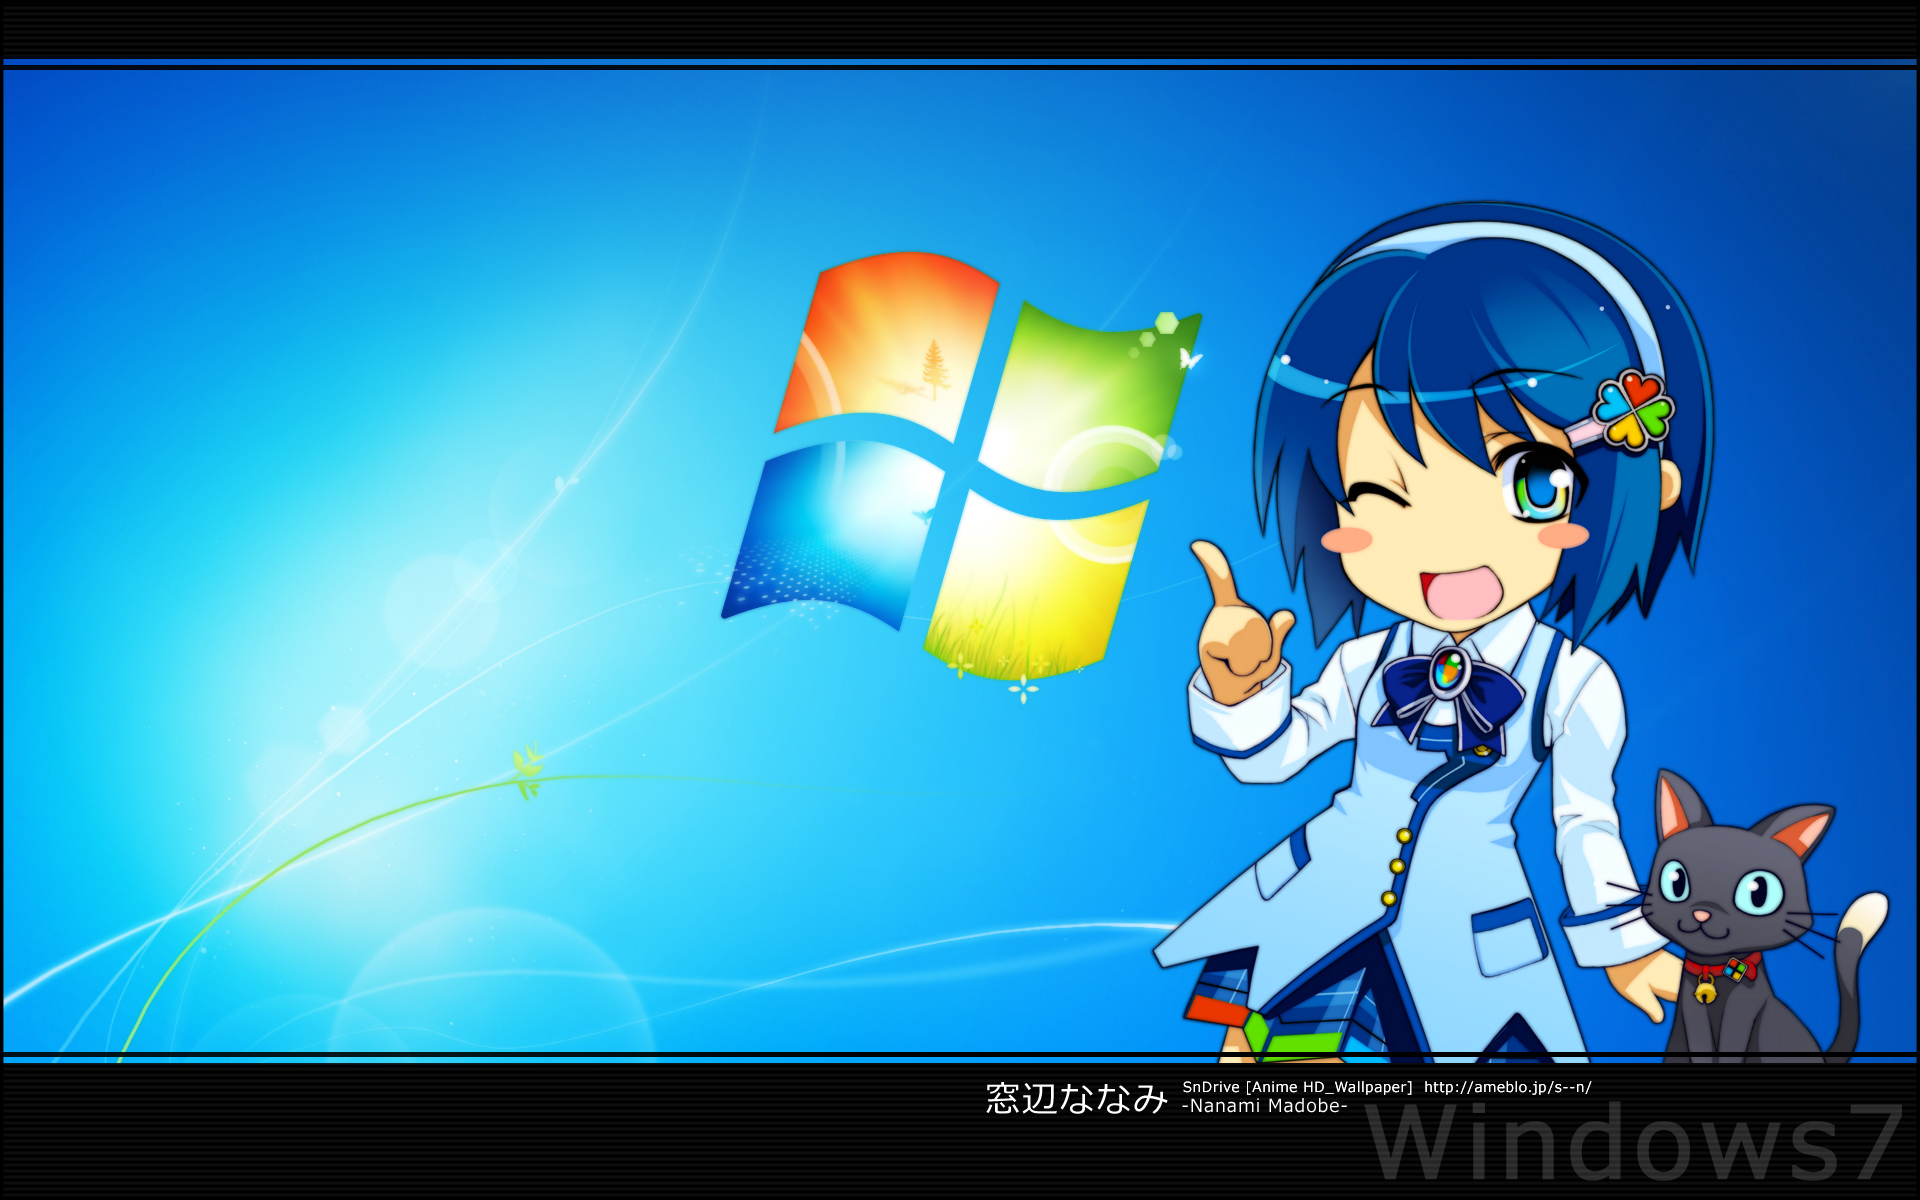 windows 7 madobe nanami HD Wallpaper